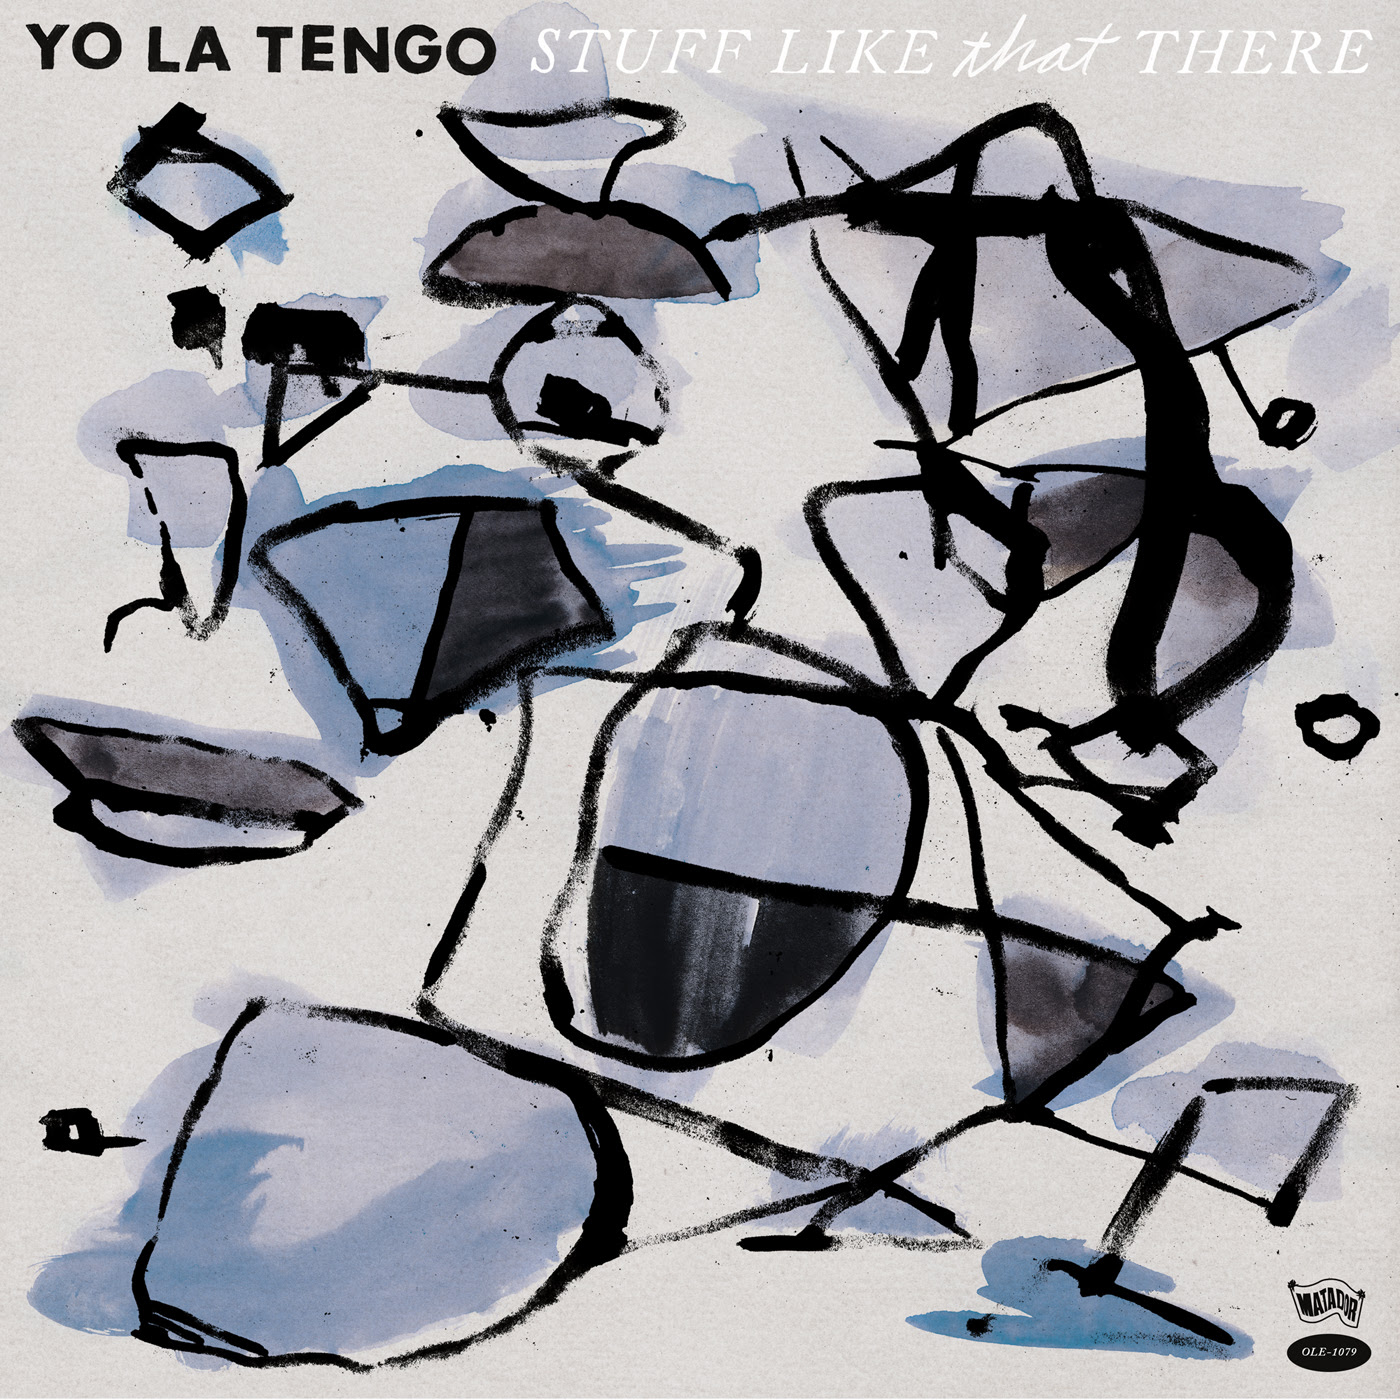 "Yo La Tengo cover The Cure's ""Friday I'm In Love"". The song comes from Yo La Tengo's forthcoming release 'Stuff Like That There'"